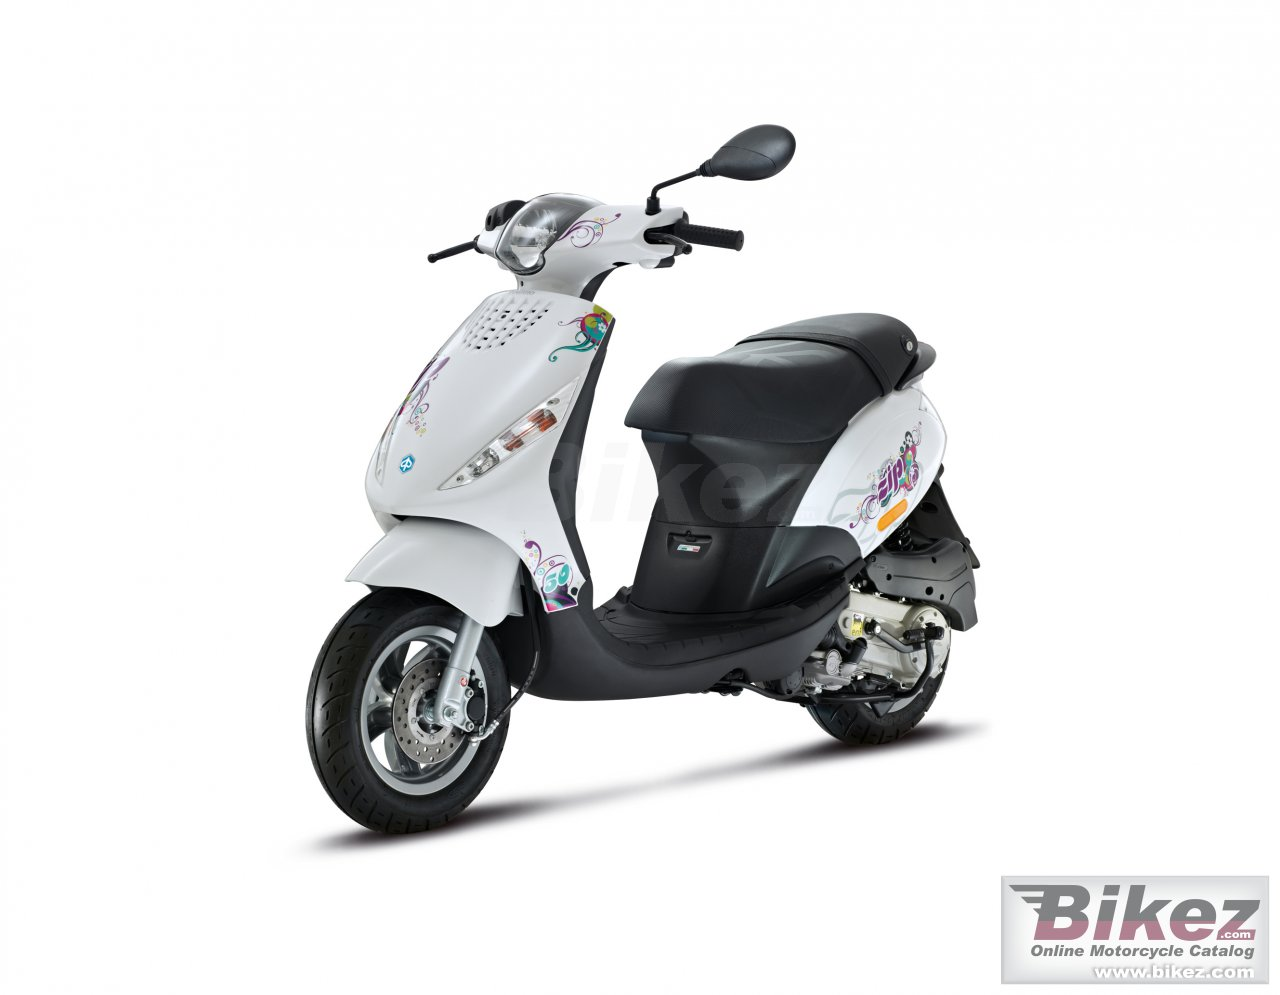 Big Piaggio zip special edition picture and wallpaper from Bikez.com